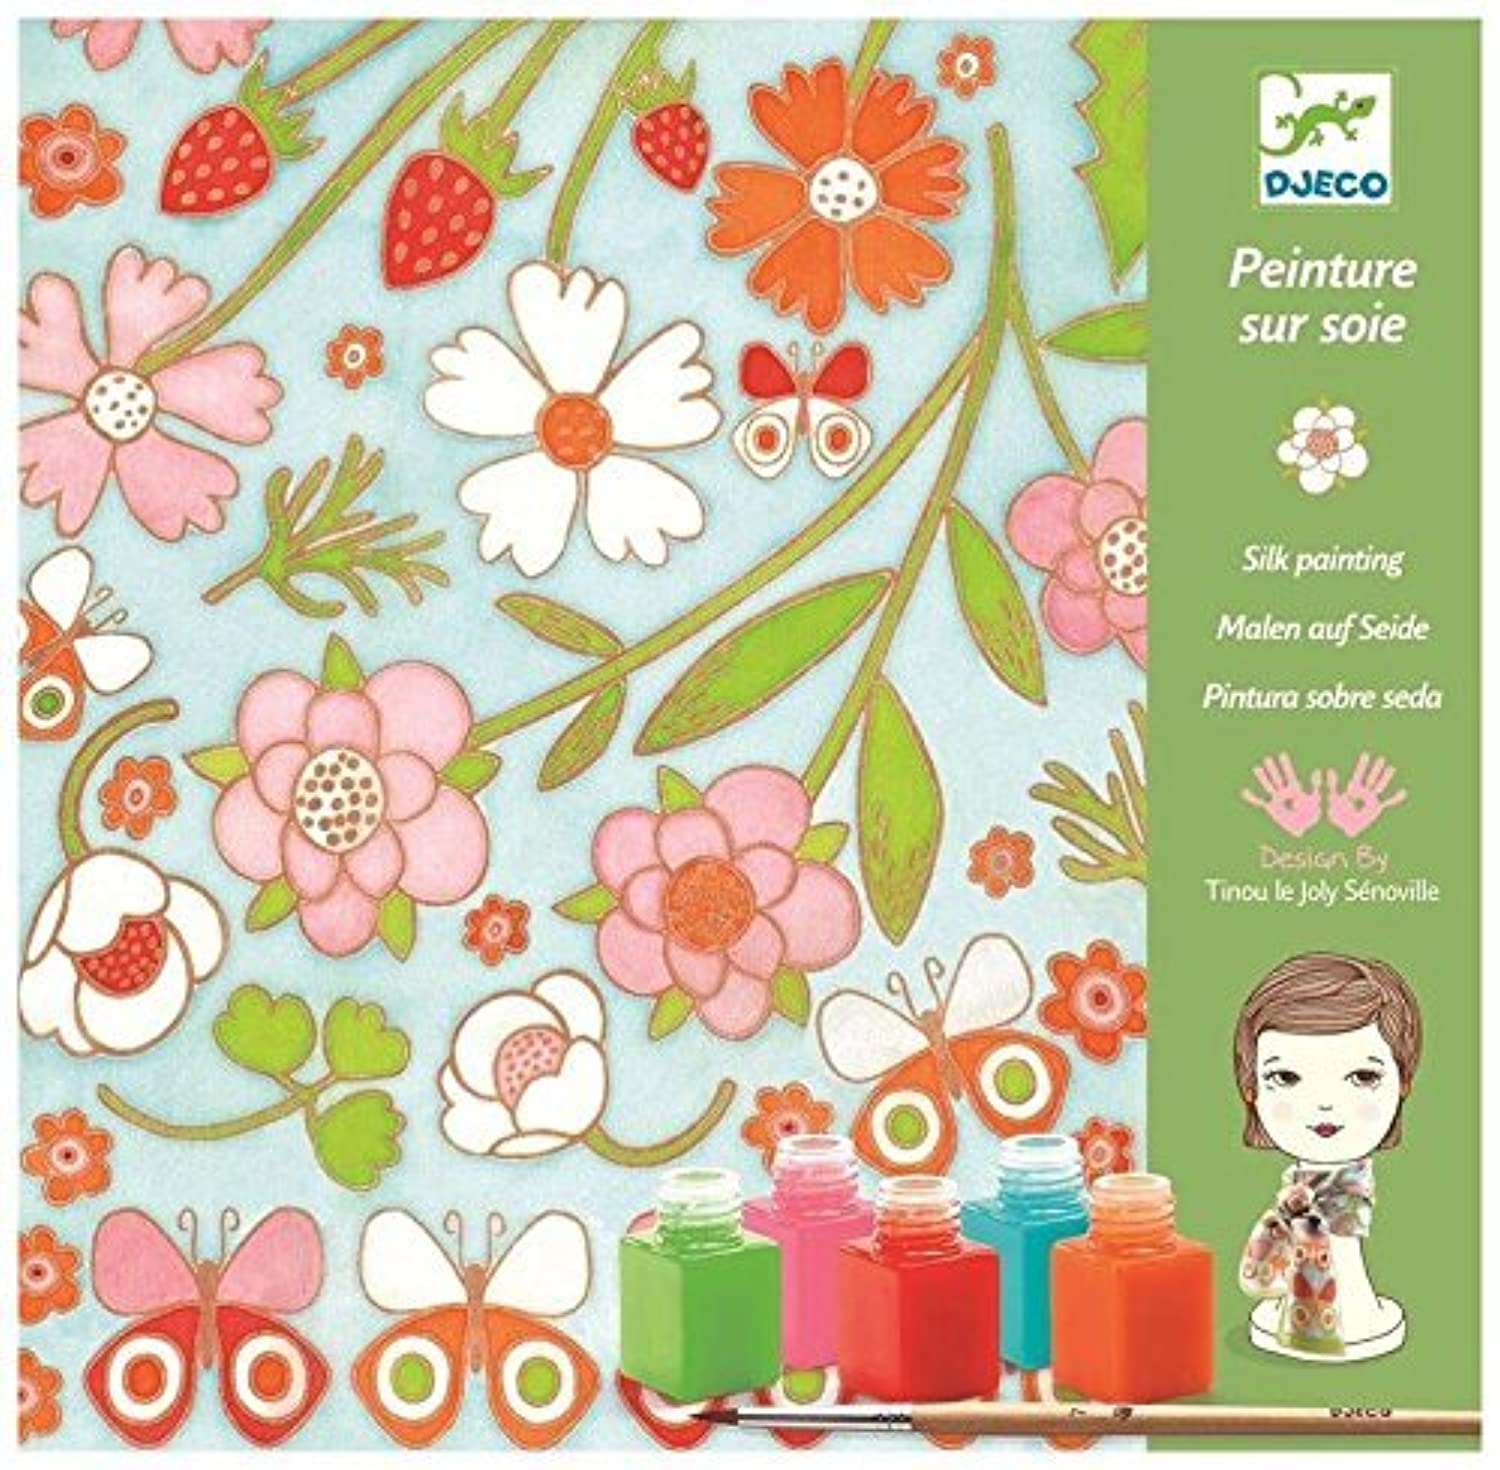 Djeco dj09852シルクpainting- Butterflies Playset